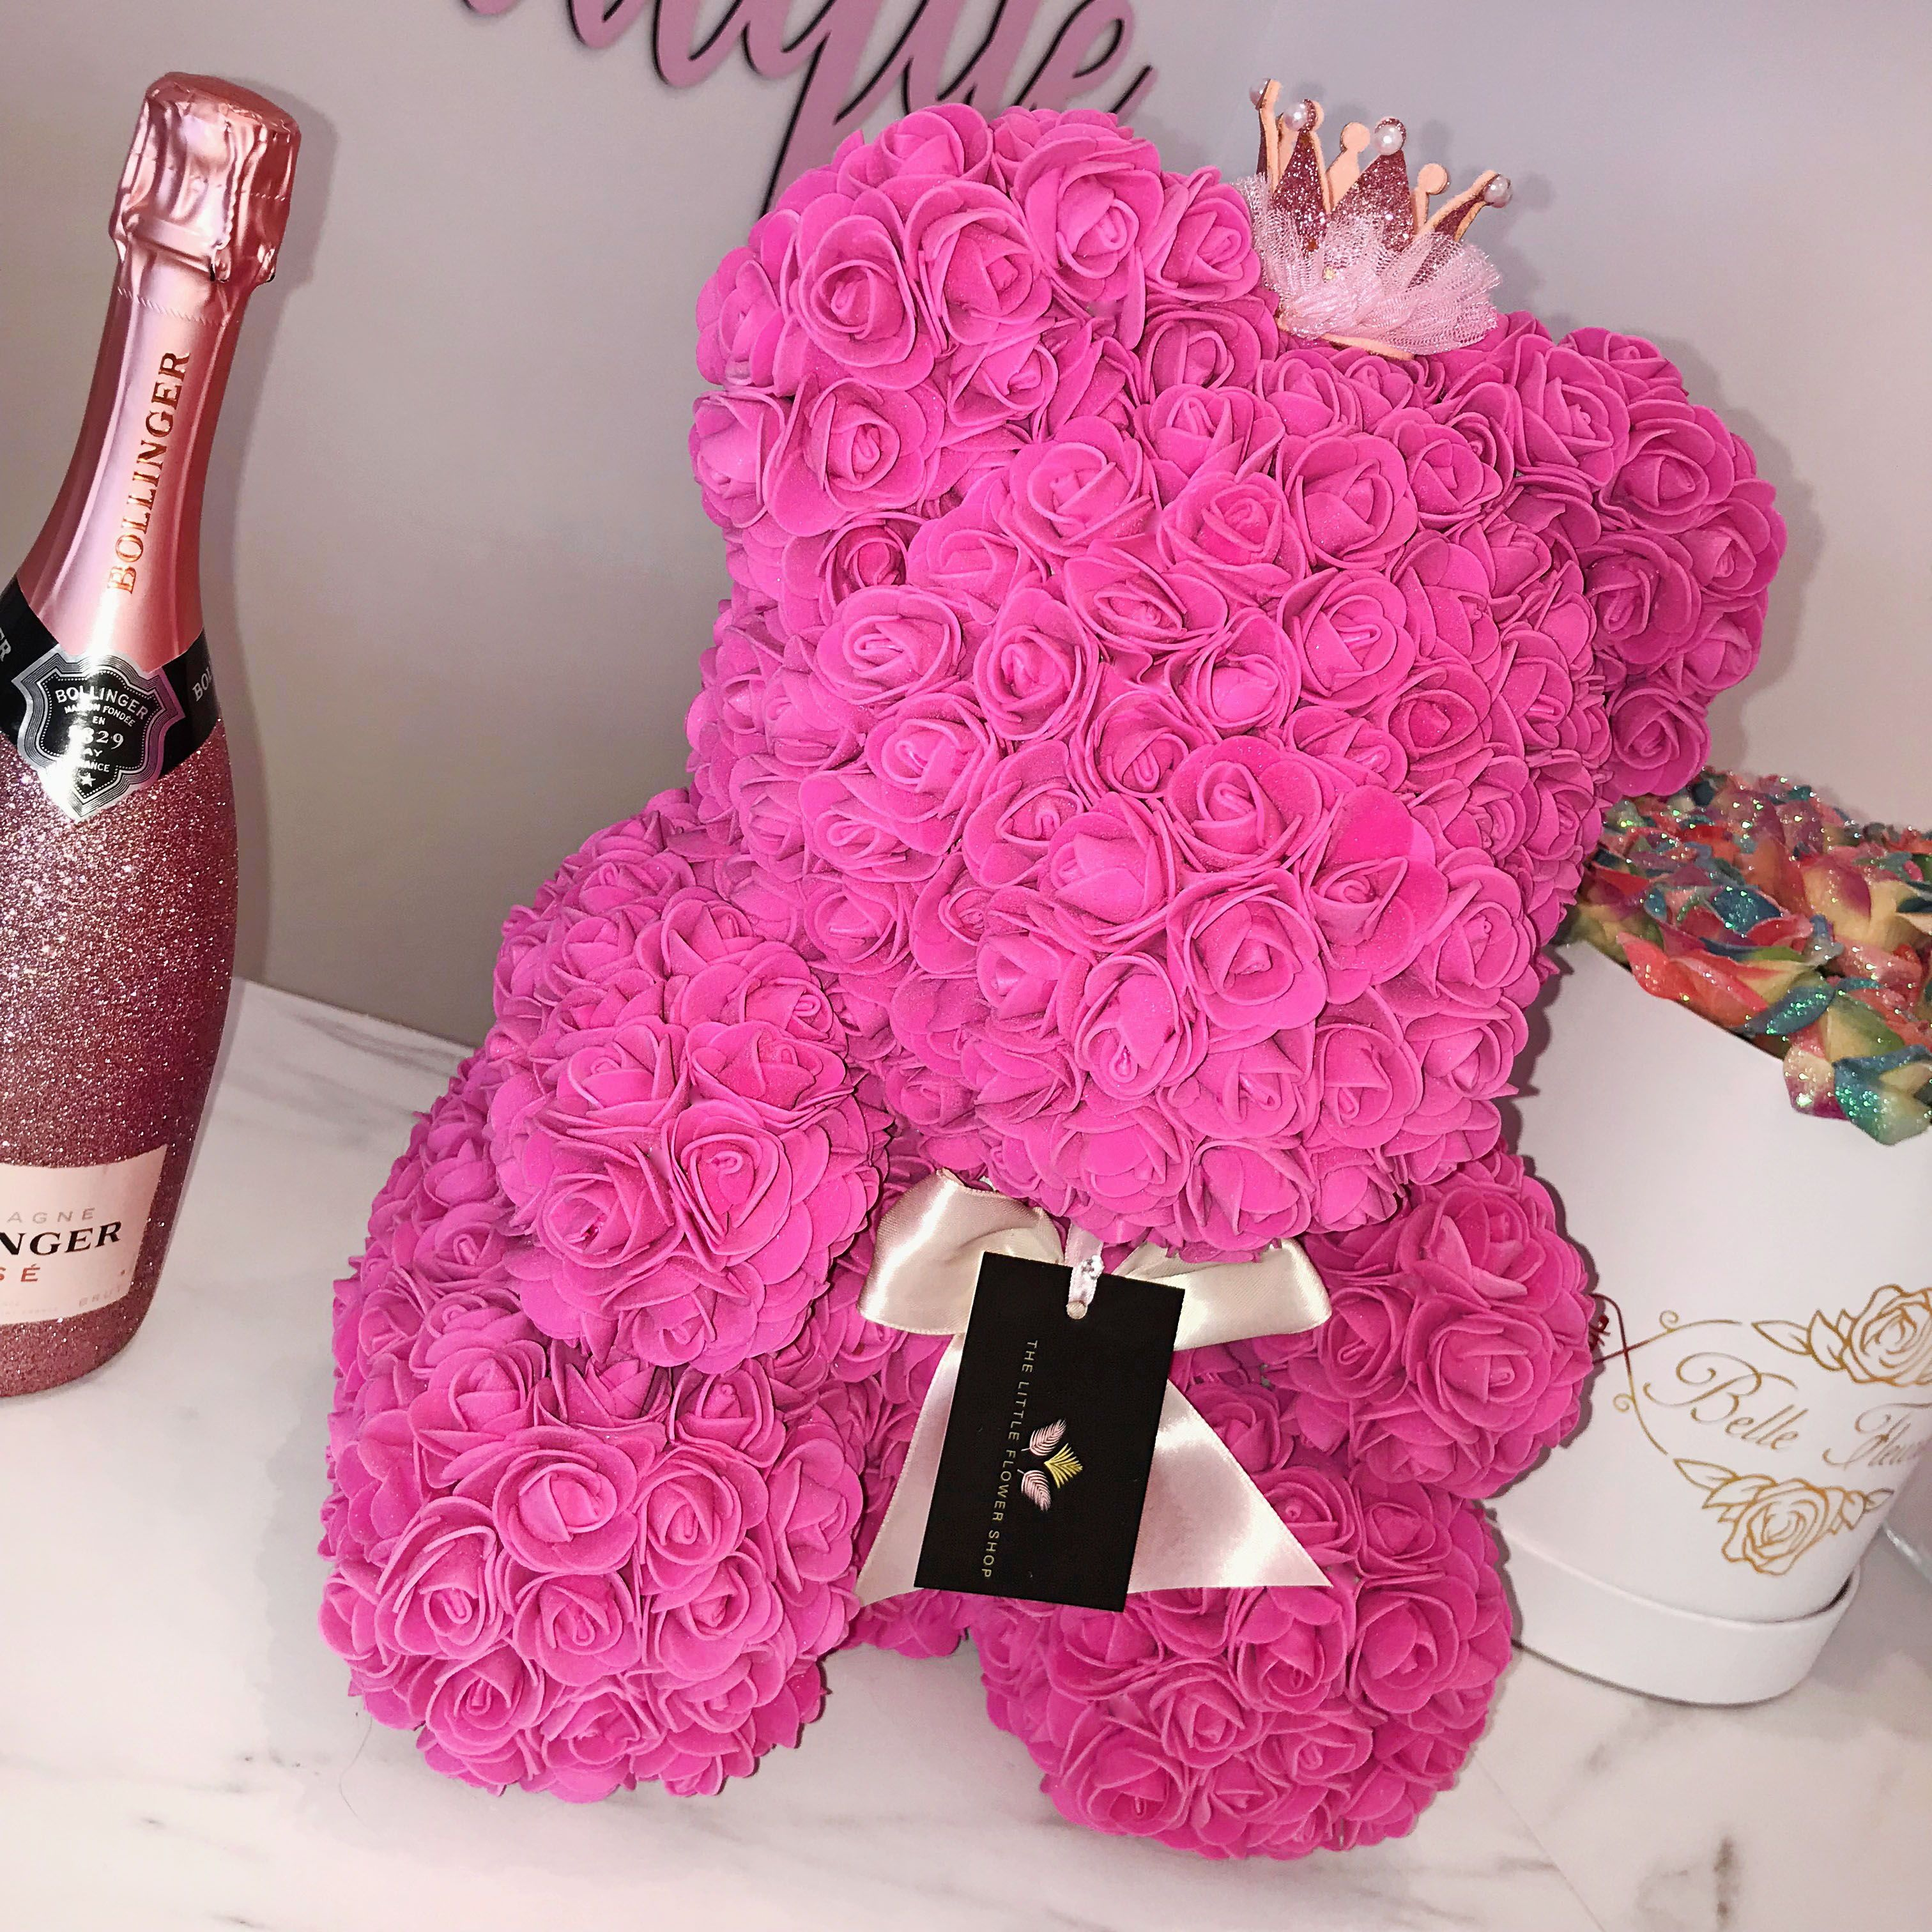 Wow This Pink Rose Bear Is Just Incred Pink Boutique Pink Girly Things Party Dresses Online